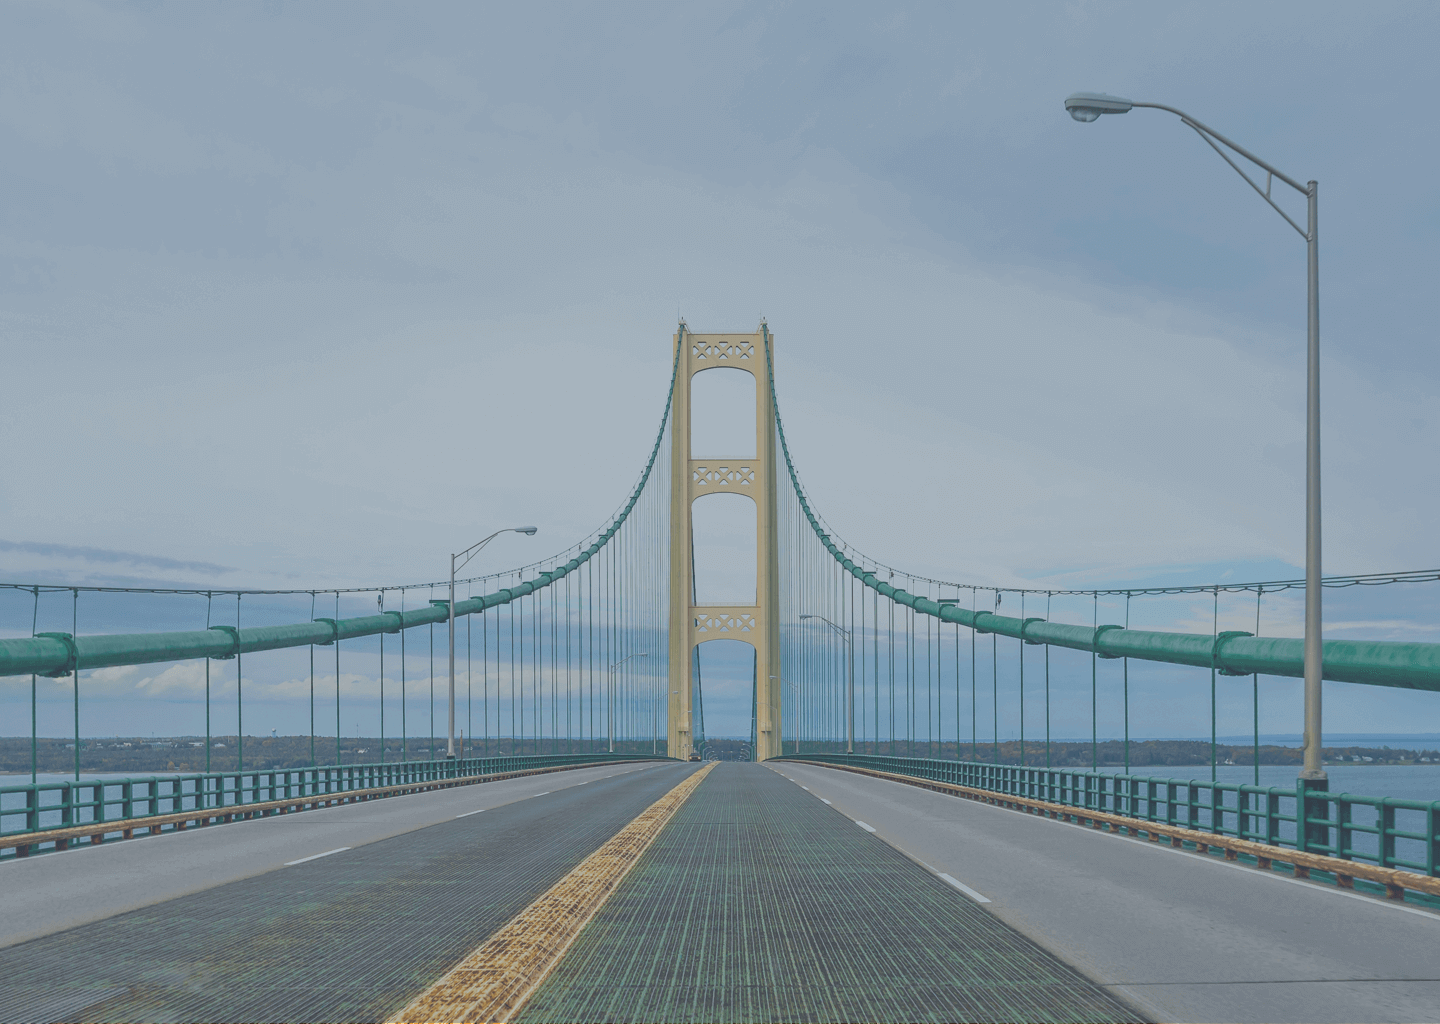 The Mackinac Bridge in Michigan